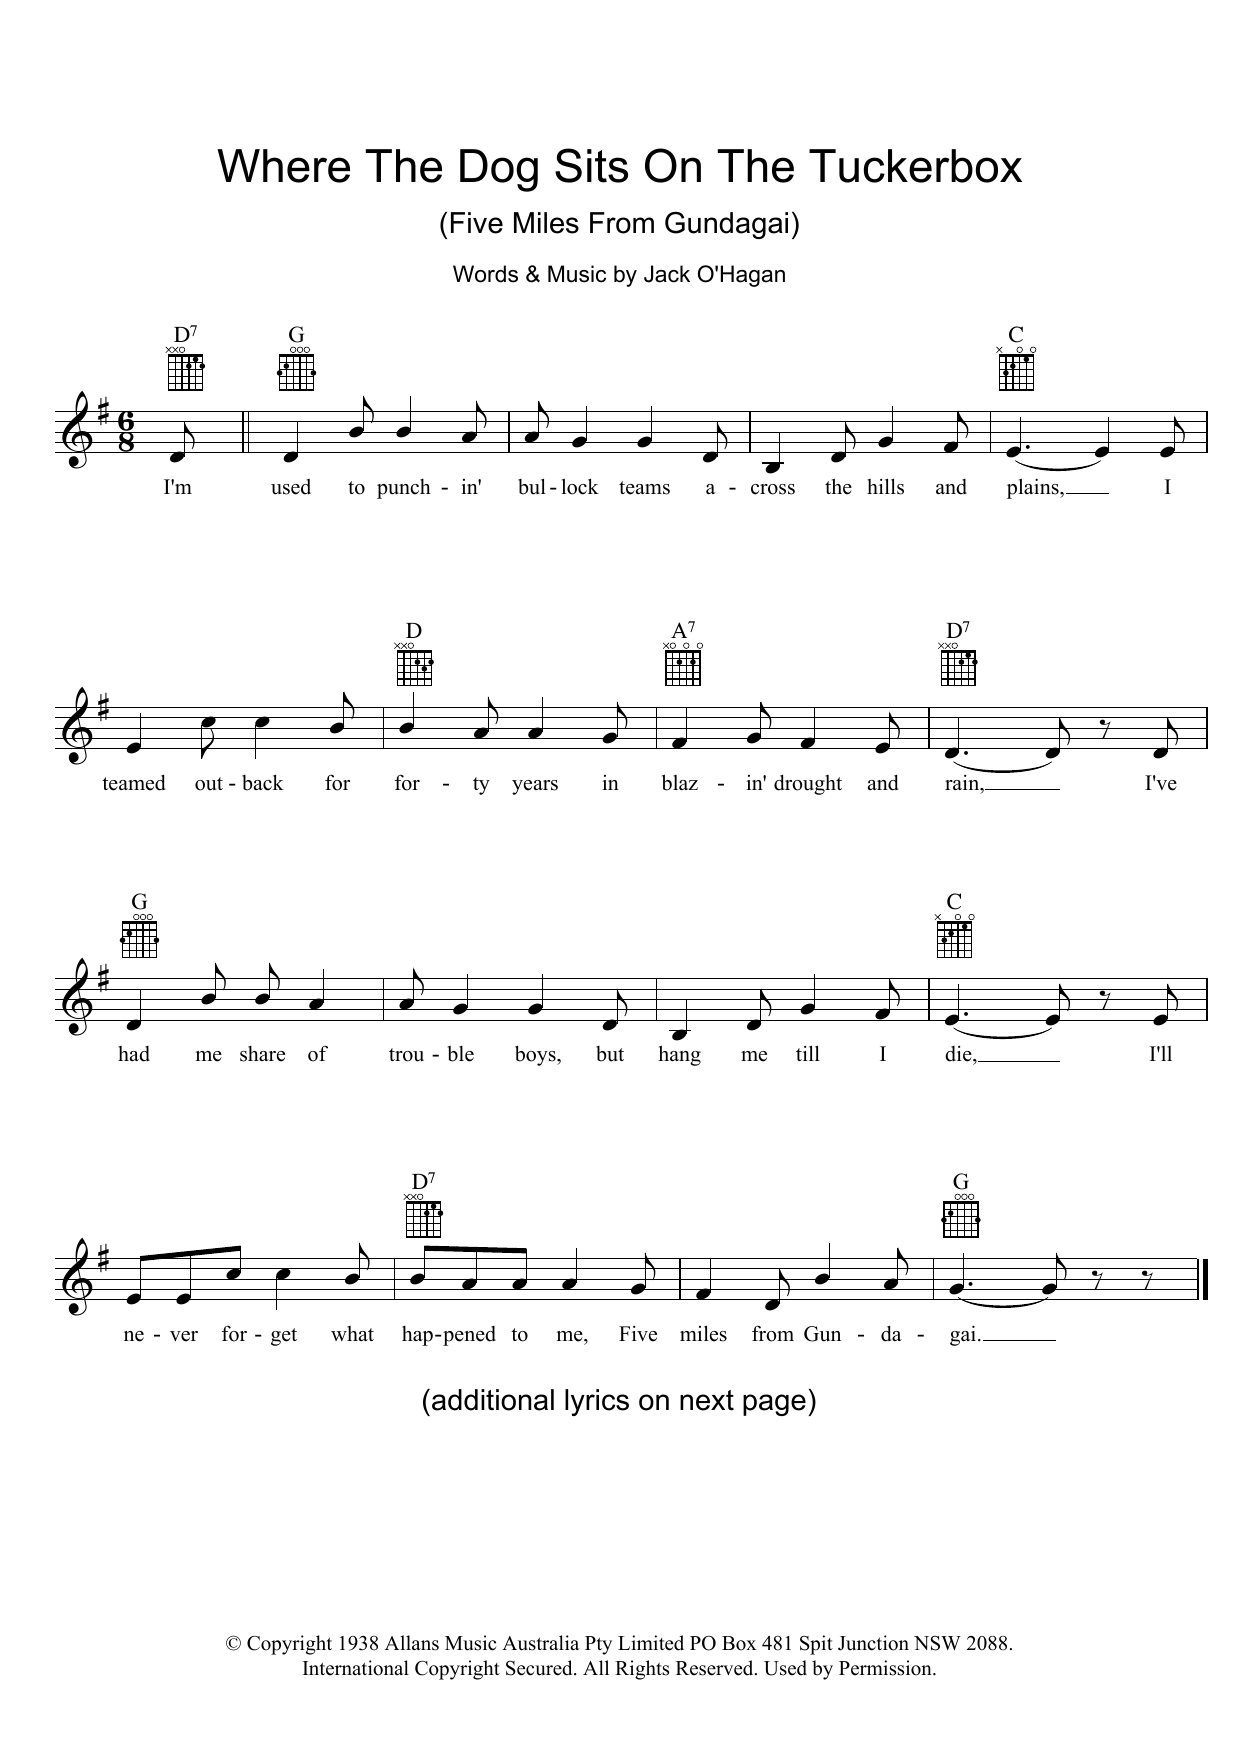 Where The Dog Sits On The Tuckerbox (Five Miles From Gundagai) Sheet Music